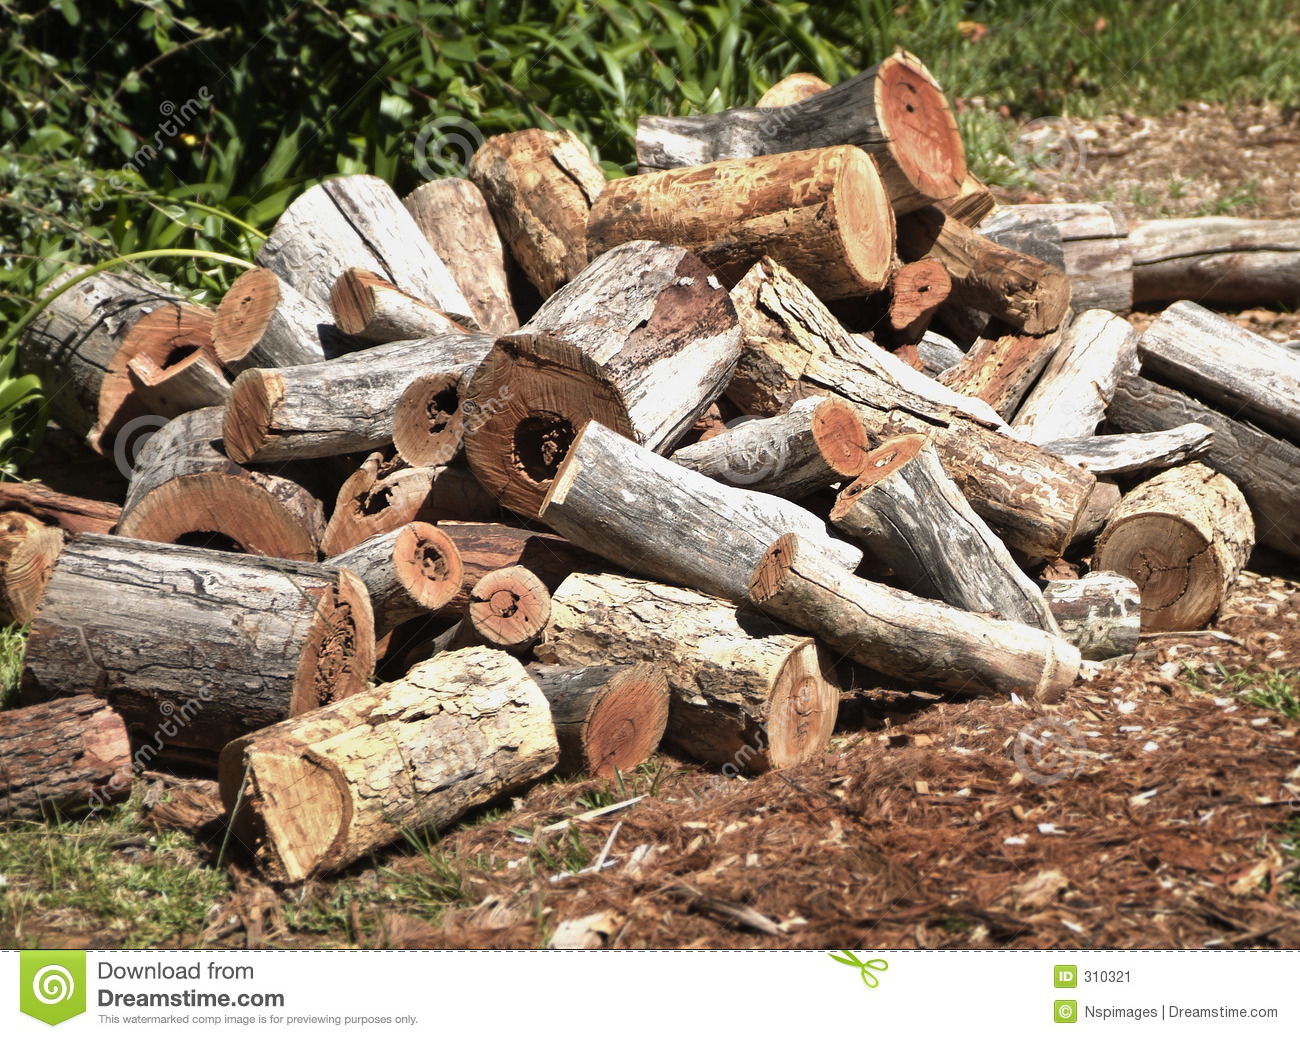 Wood Pile Stock Image Image 310321.